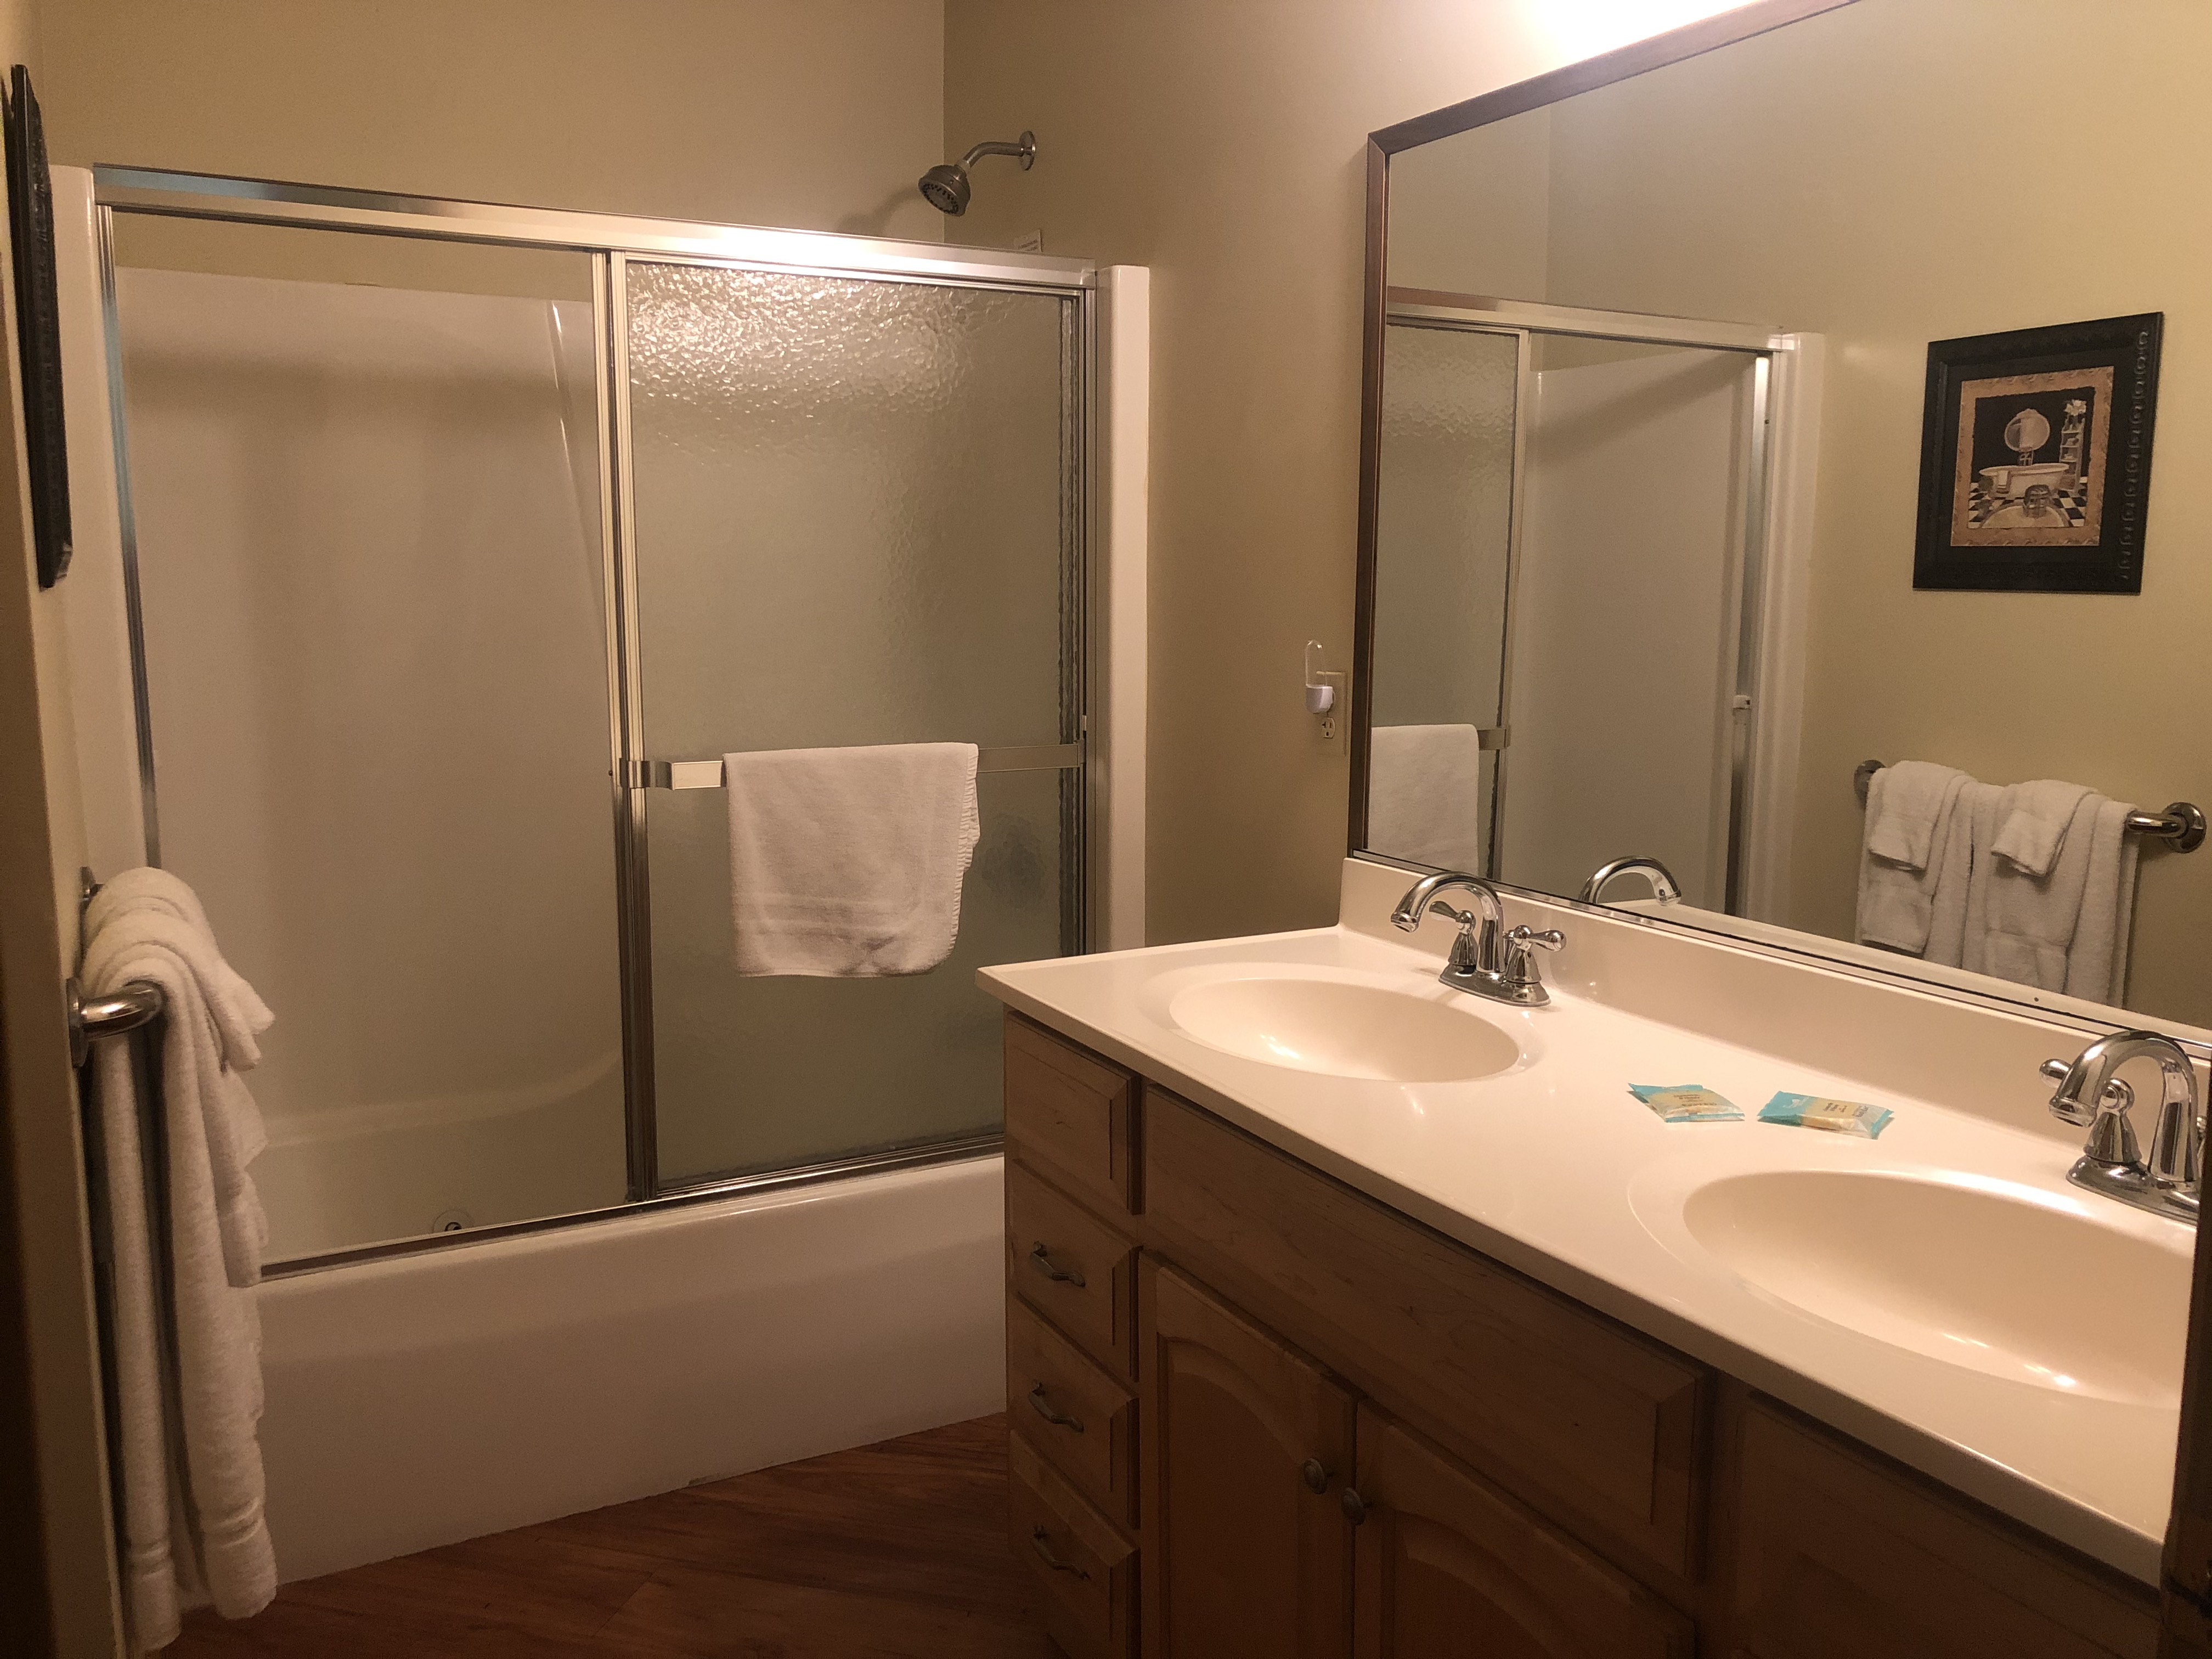 2 Bed / 1 Bath Bathroom